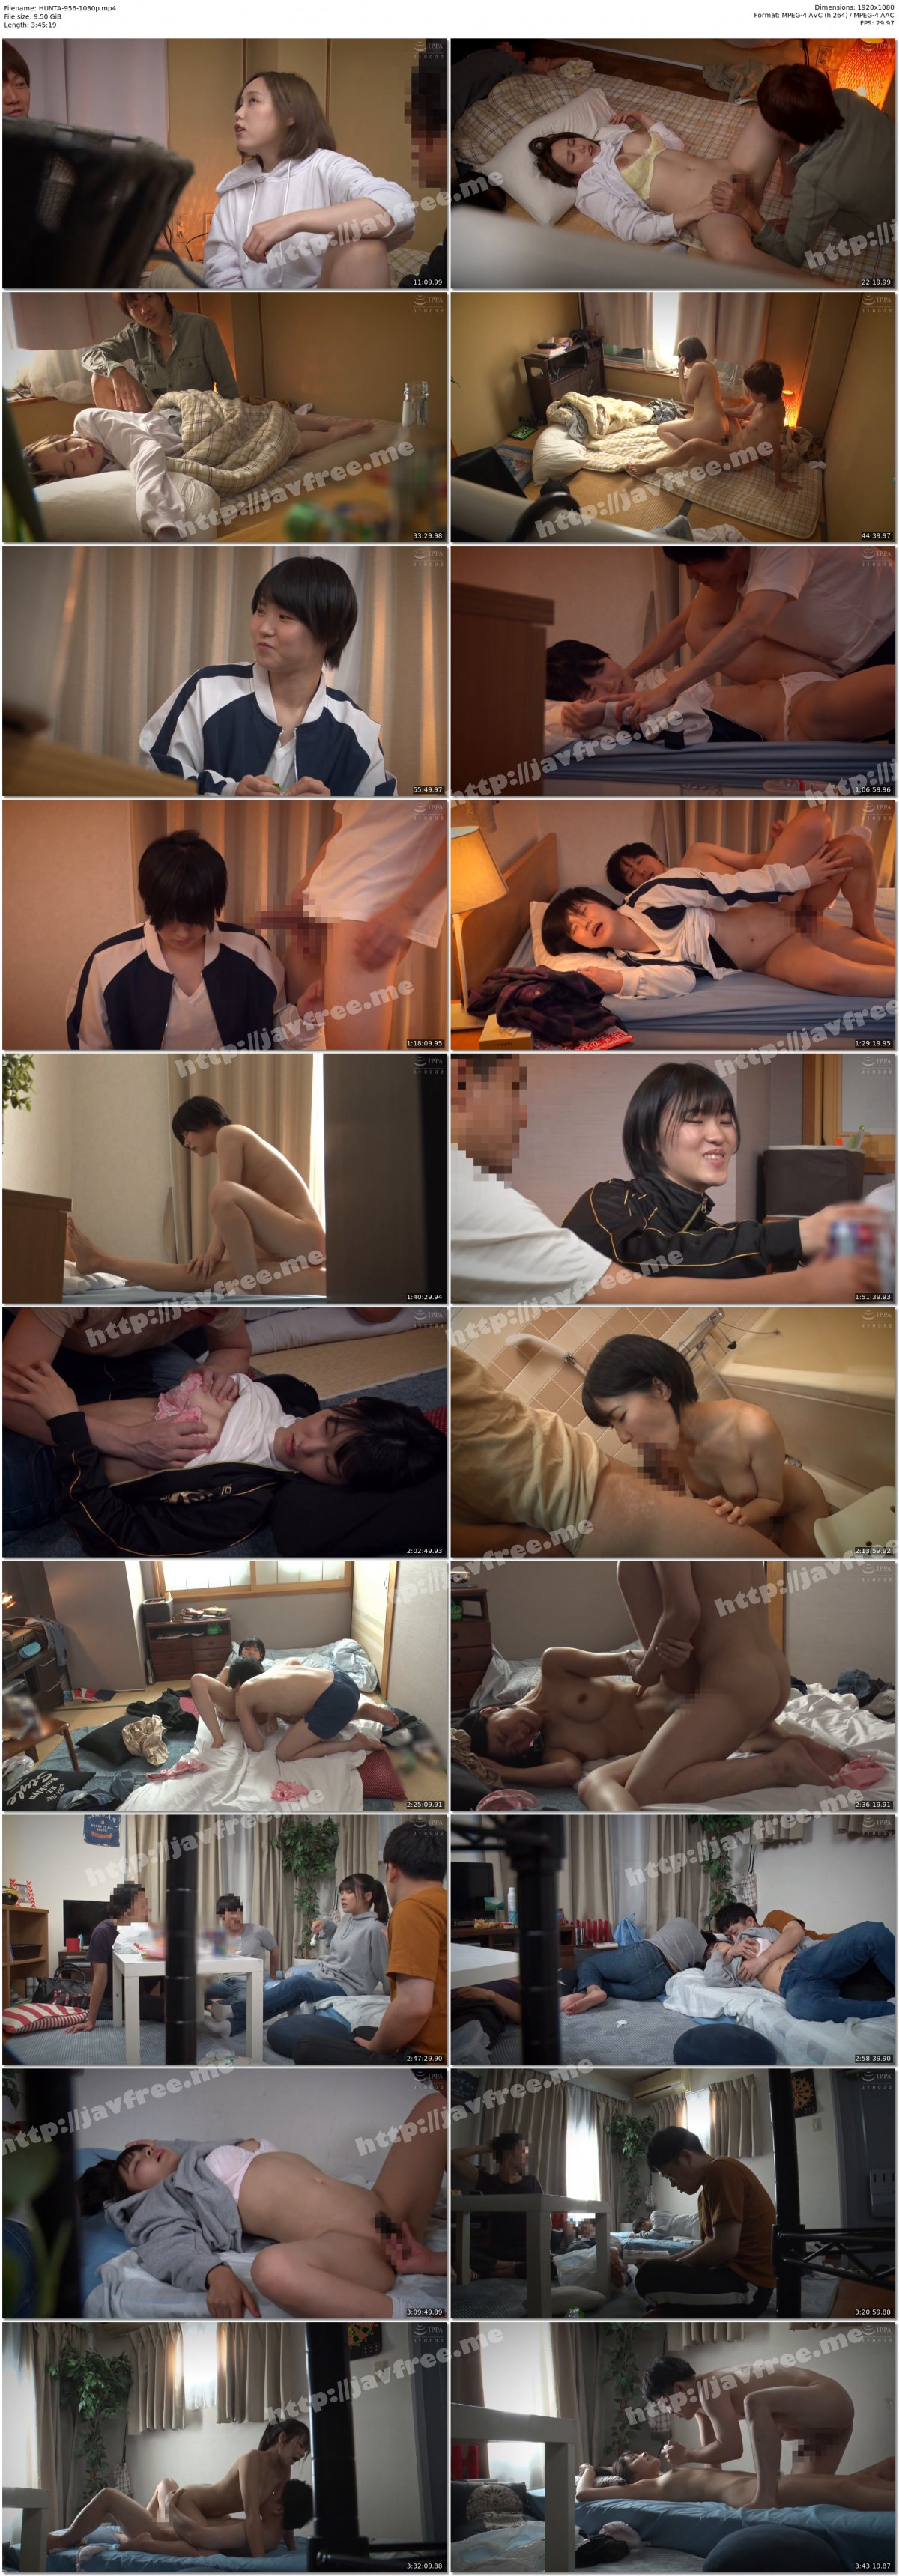 [HD][MMYM-043] 卑猥語女 ジューン・ラブジョイ - image heyzo_sd_2487_full on https://javfree.me